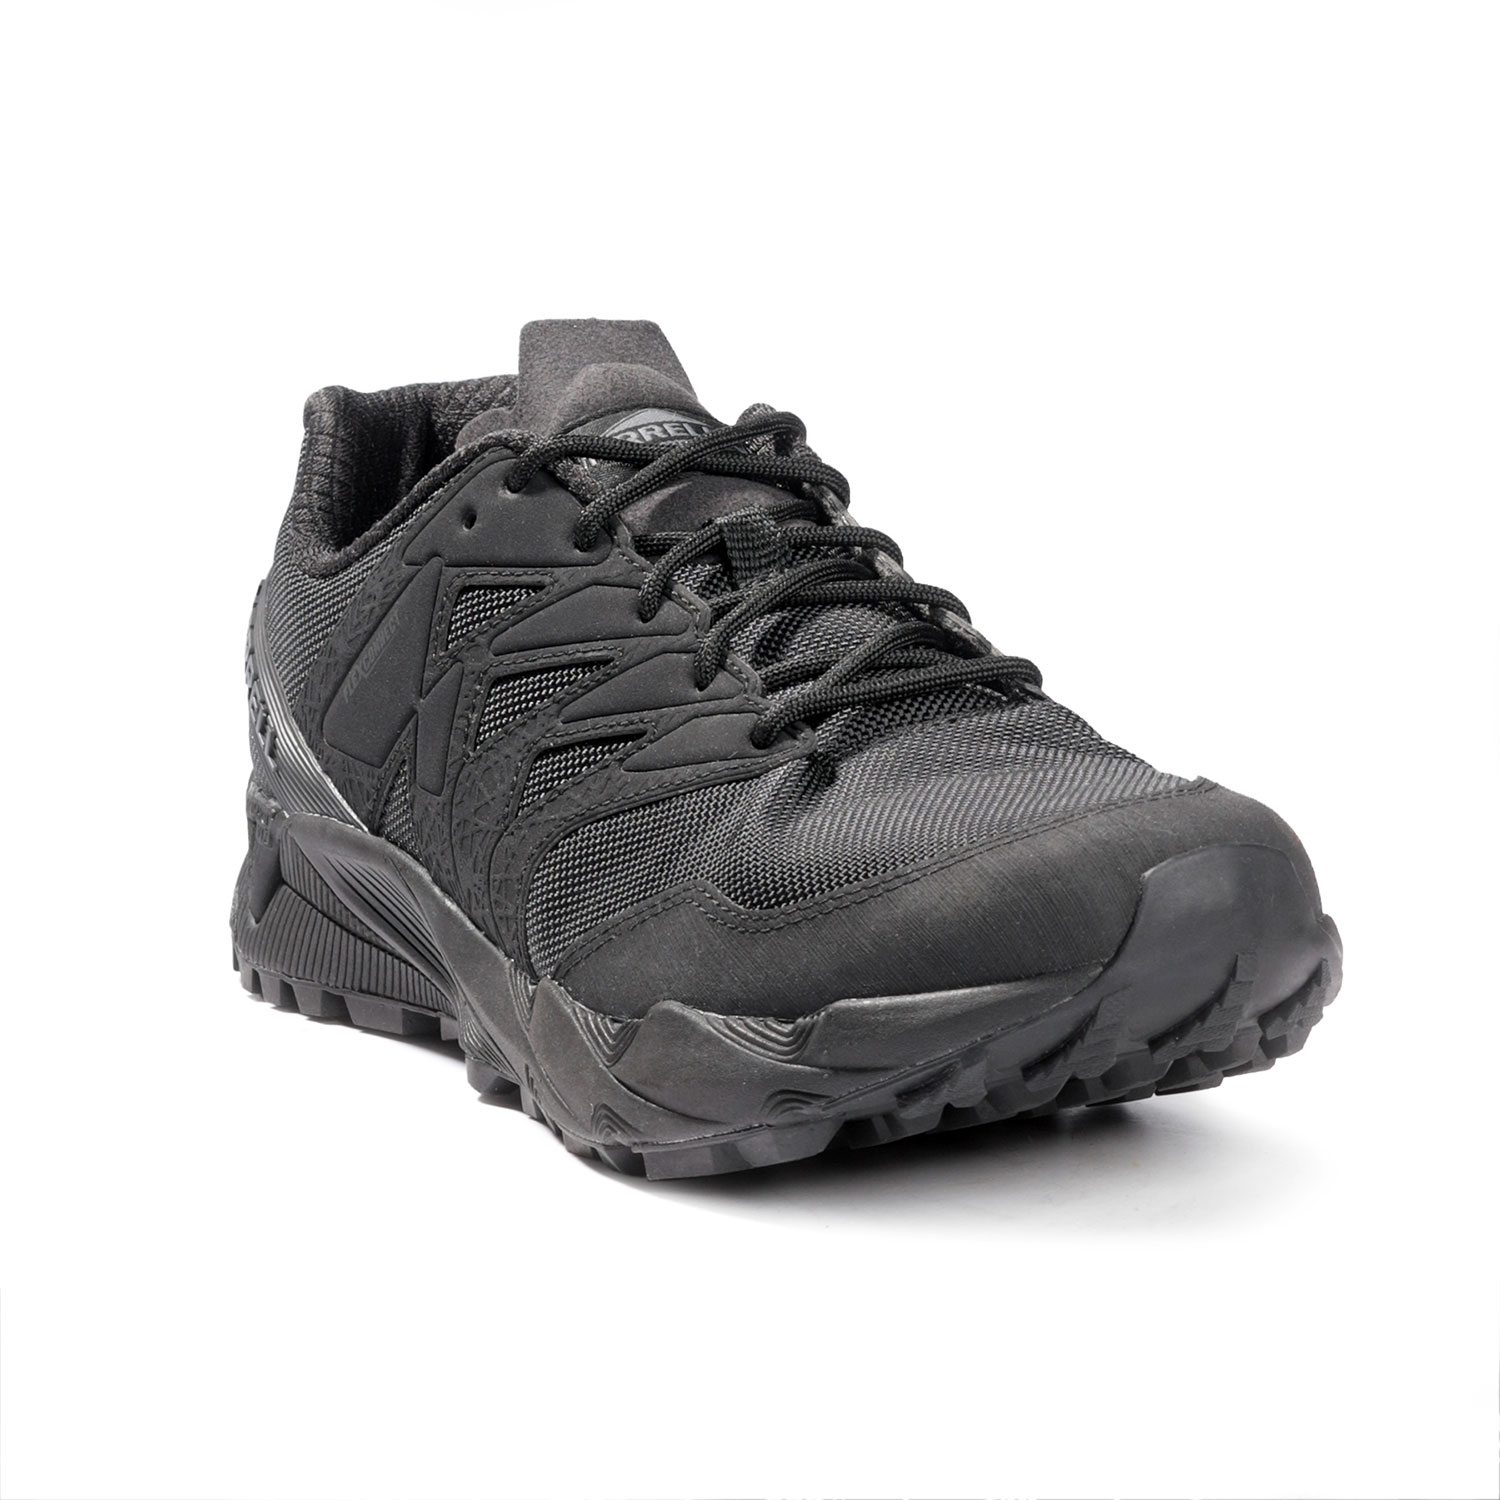 Merrell Women's Agility Peak Tactical Training Shoe